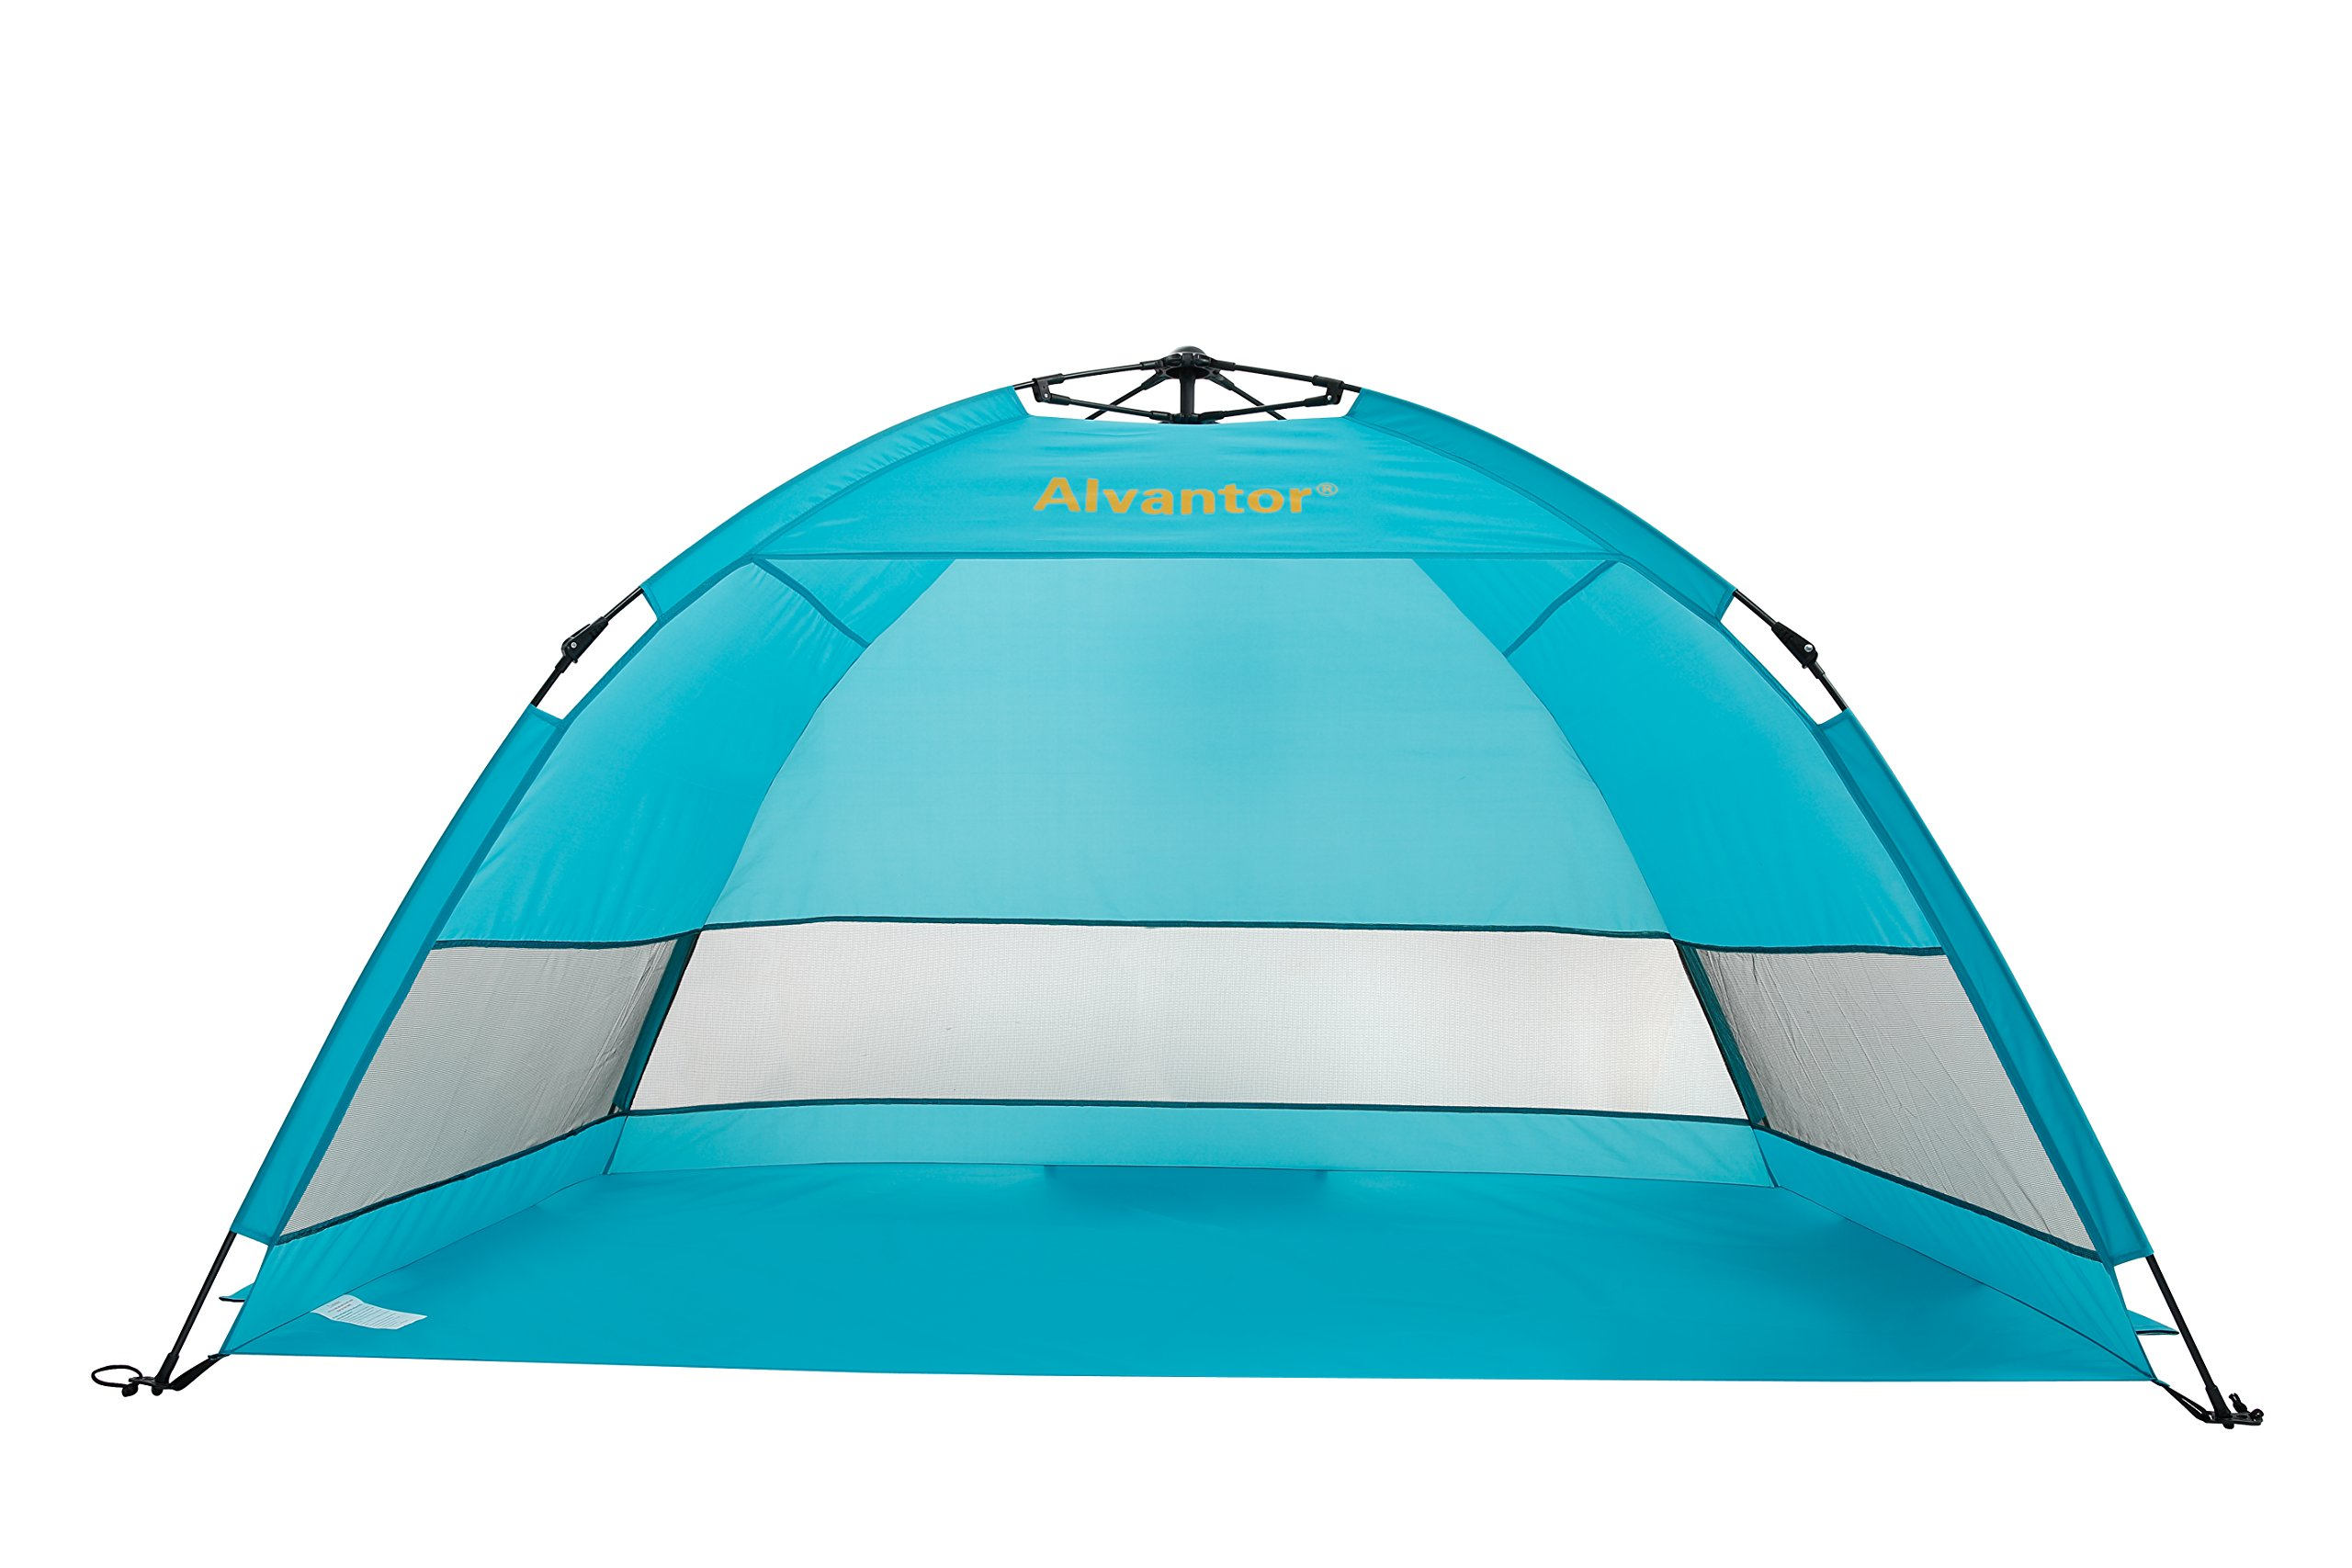 LEEDOR Beach Tent Umbrella Outdoor Sun Shelter Cabana Automatic Pop Up UPF 50+ Sun Shade Portable Camping Fishing Hiking Canopy Easy Setup Windproof Patent Pending 3 or 4 Person